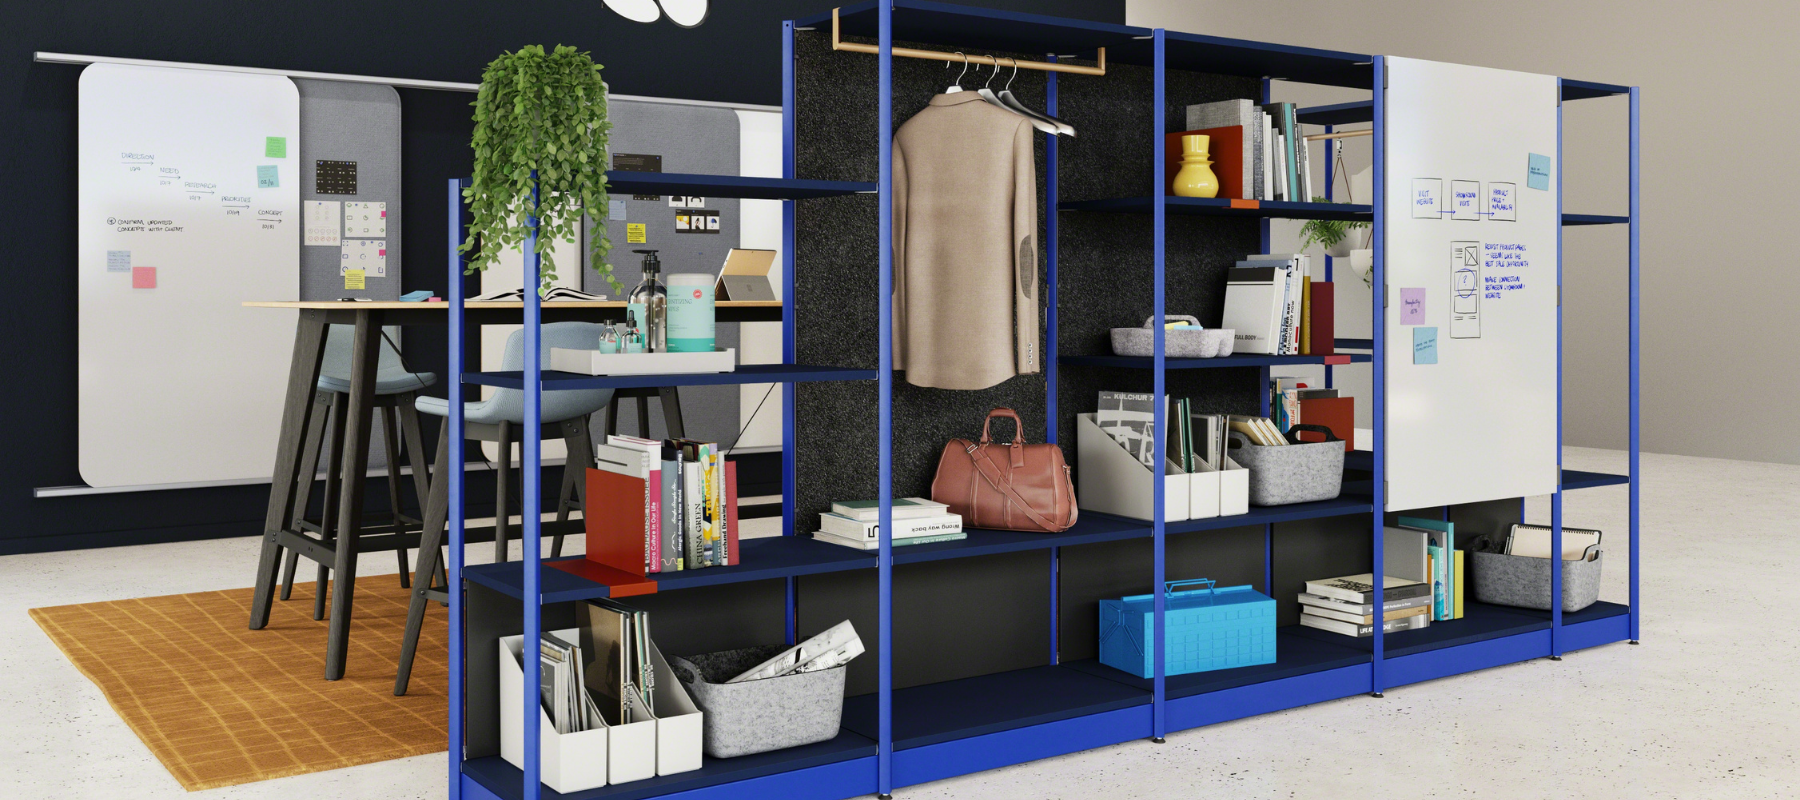 Flex active frames storage and space division in a hybrid workplace